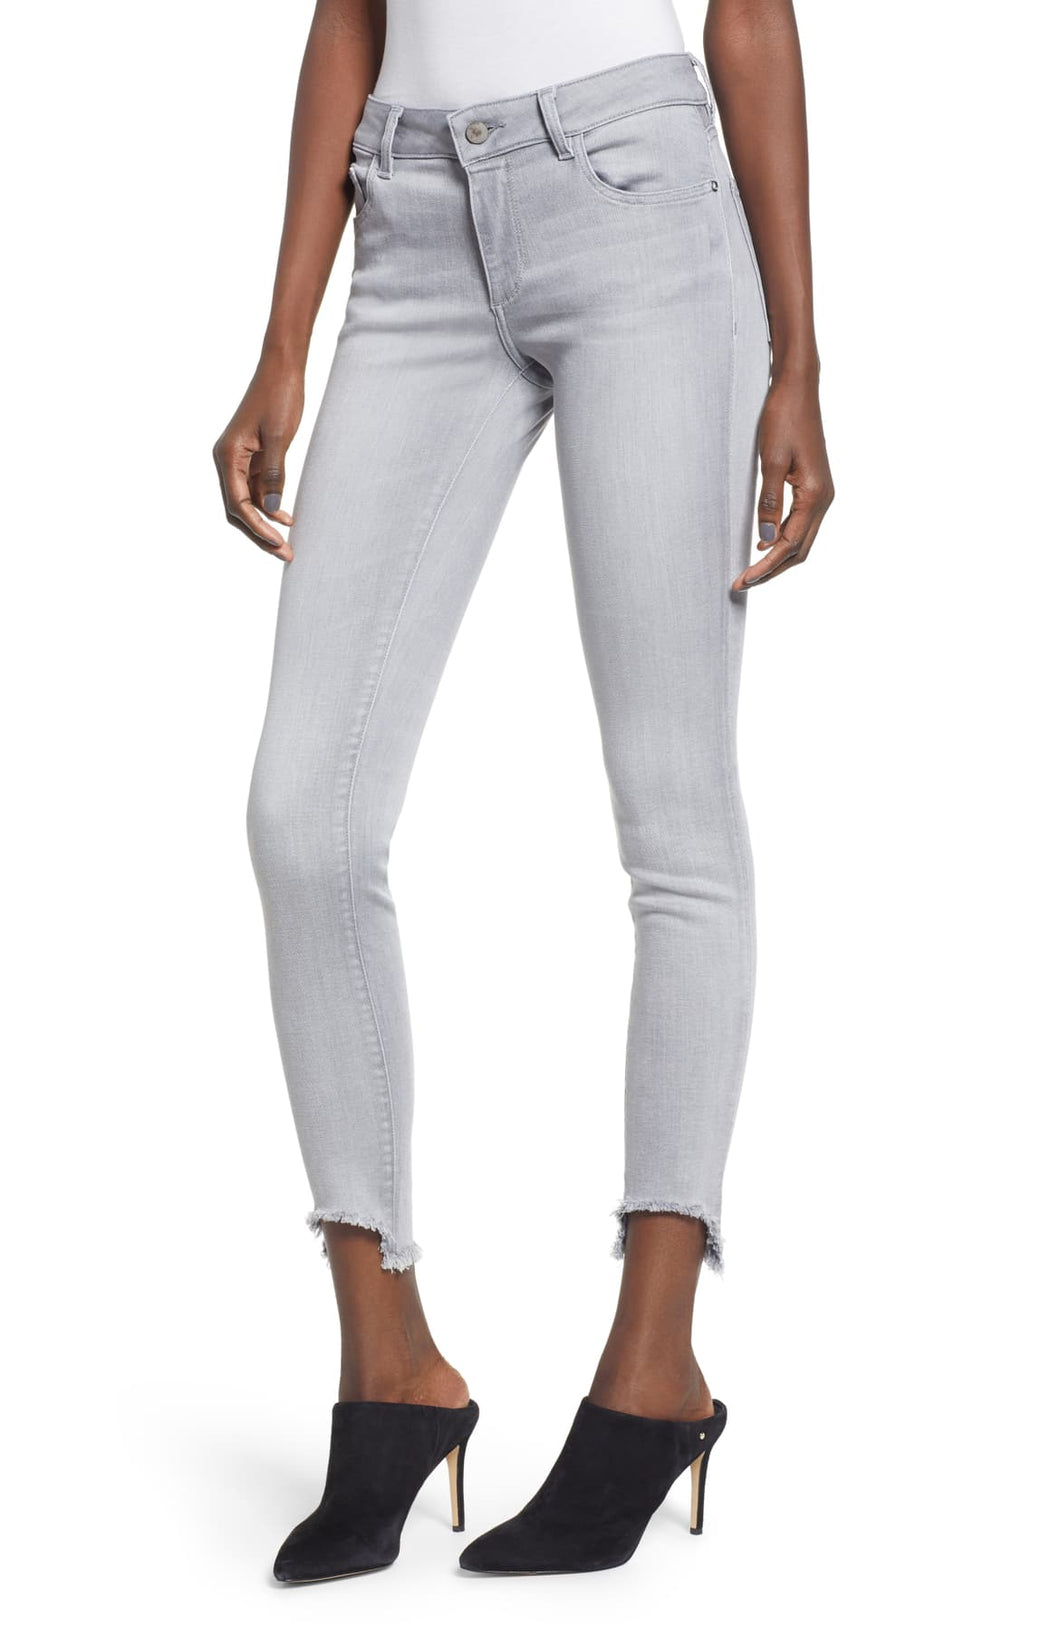 DL1961 Emma Low Rise Skinny Jean in Ronan Grey